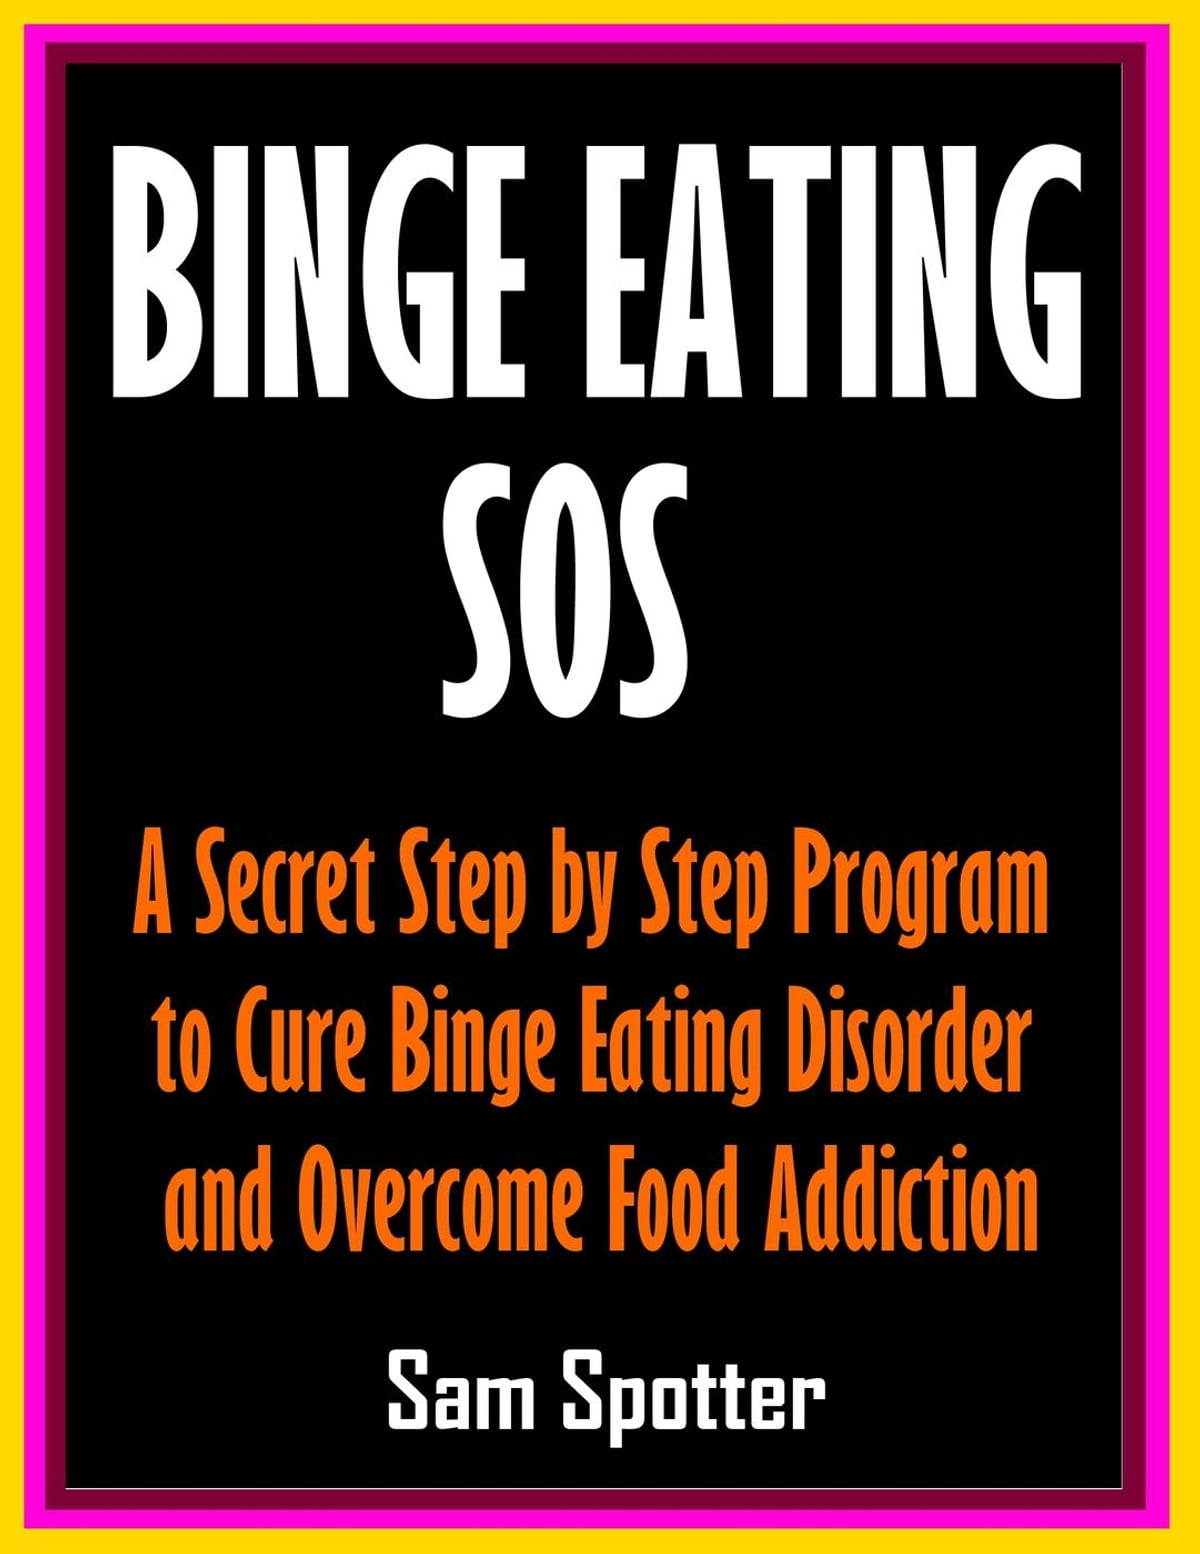 Binge Eating SOS: A Secret Step by Step Program to Cure Binge Eating Disorder and Overcome Food Addiction eBook by Sam Spotter - 9781536513110 ...